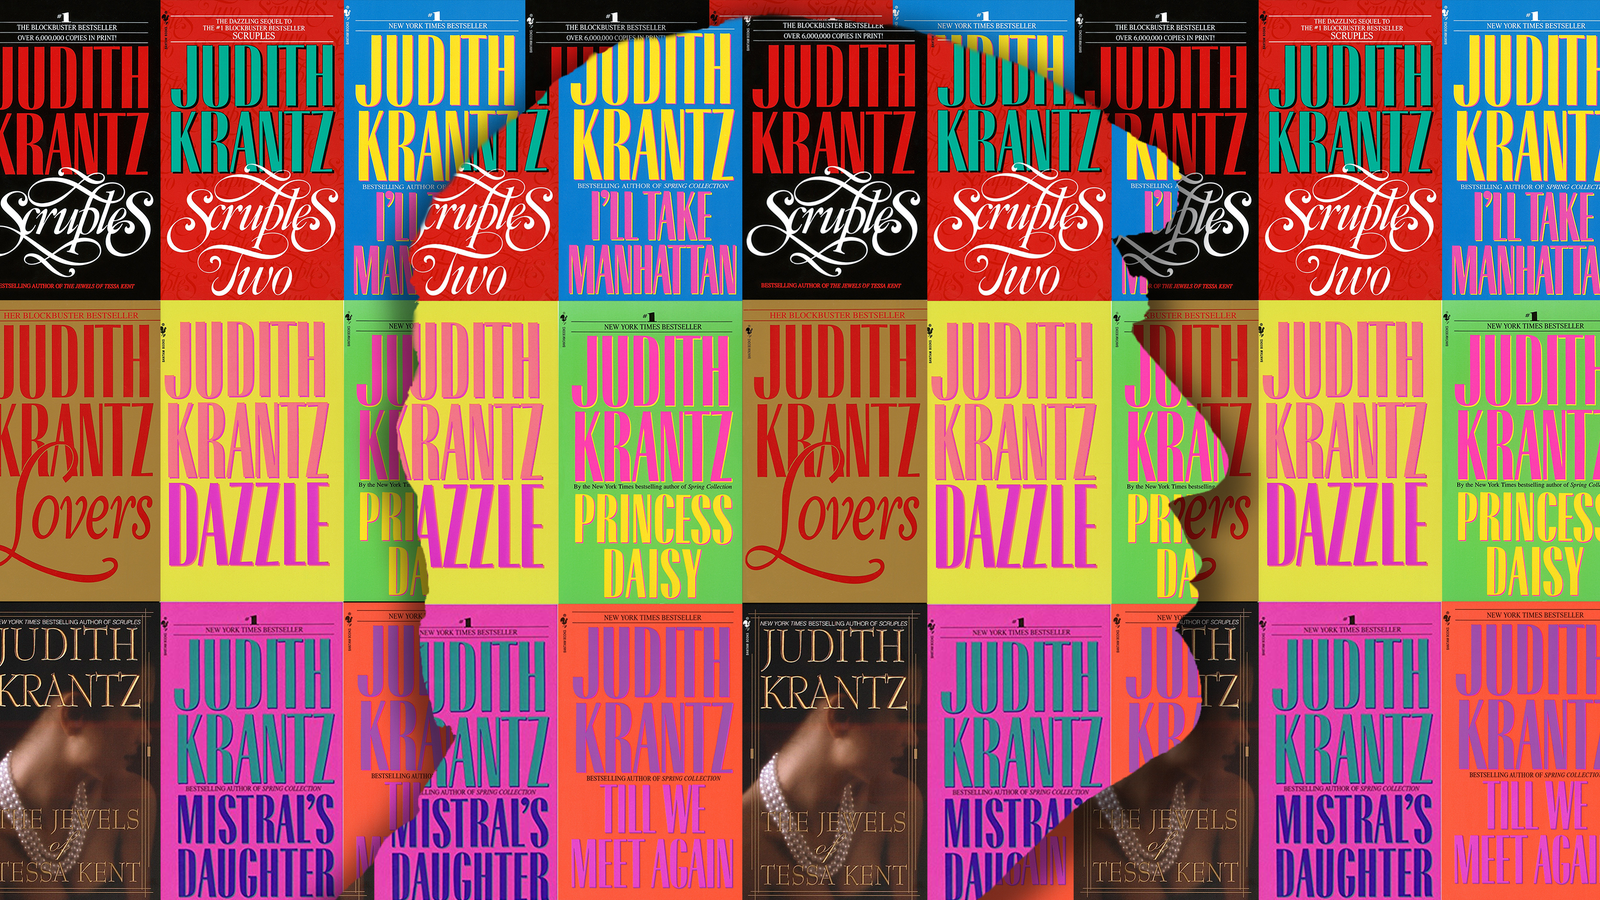 Judith Krantz Was the Most Important Writer of the 20th Century